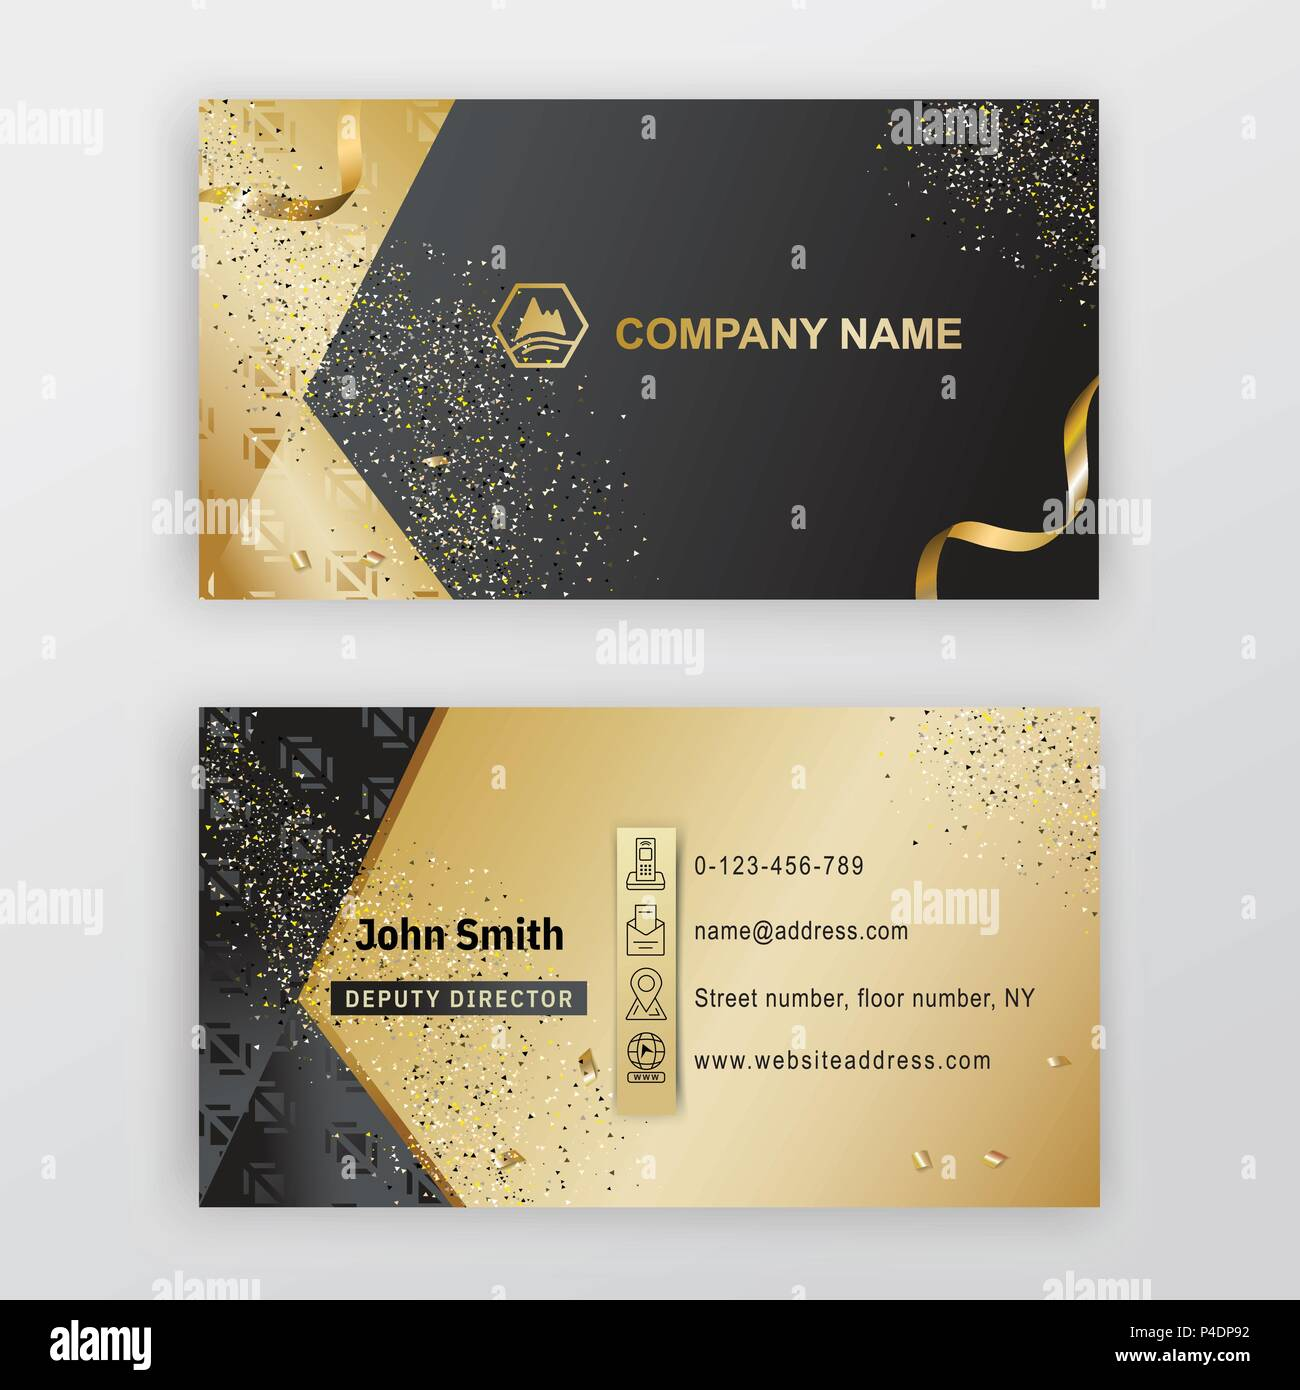 Business card black gold background with logo thin icons luxury business card black gold background with logo thin icons luxury background colourmoves